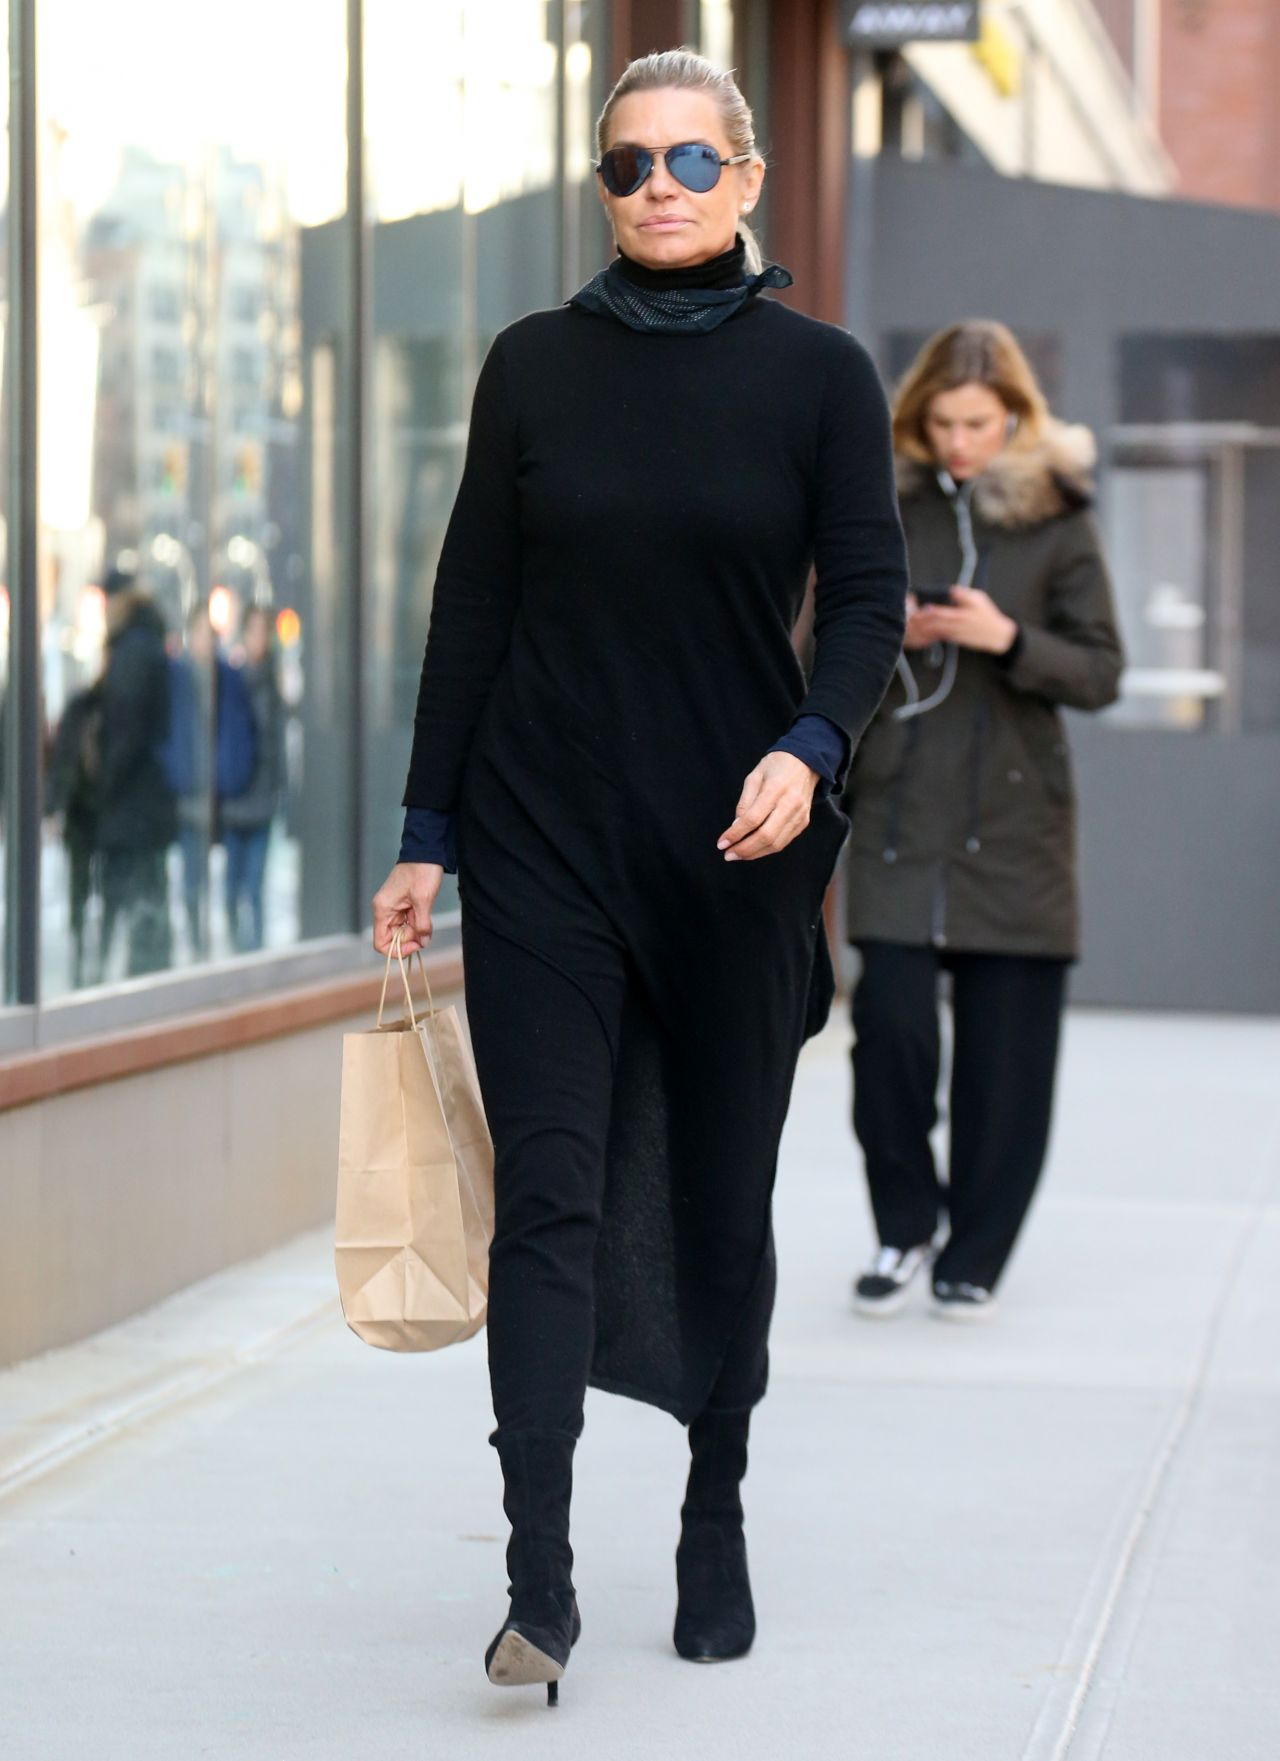 a971e0b7fb Yolanda Hadid Street Fashion – Out in New York 02 12 2018